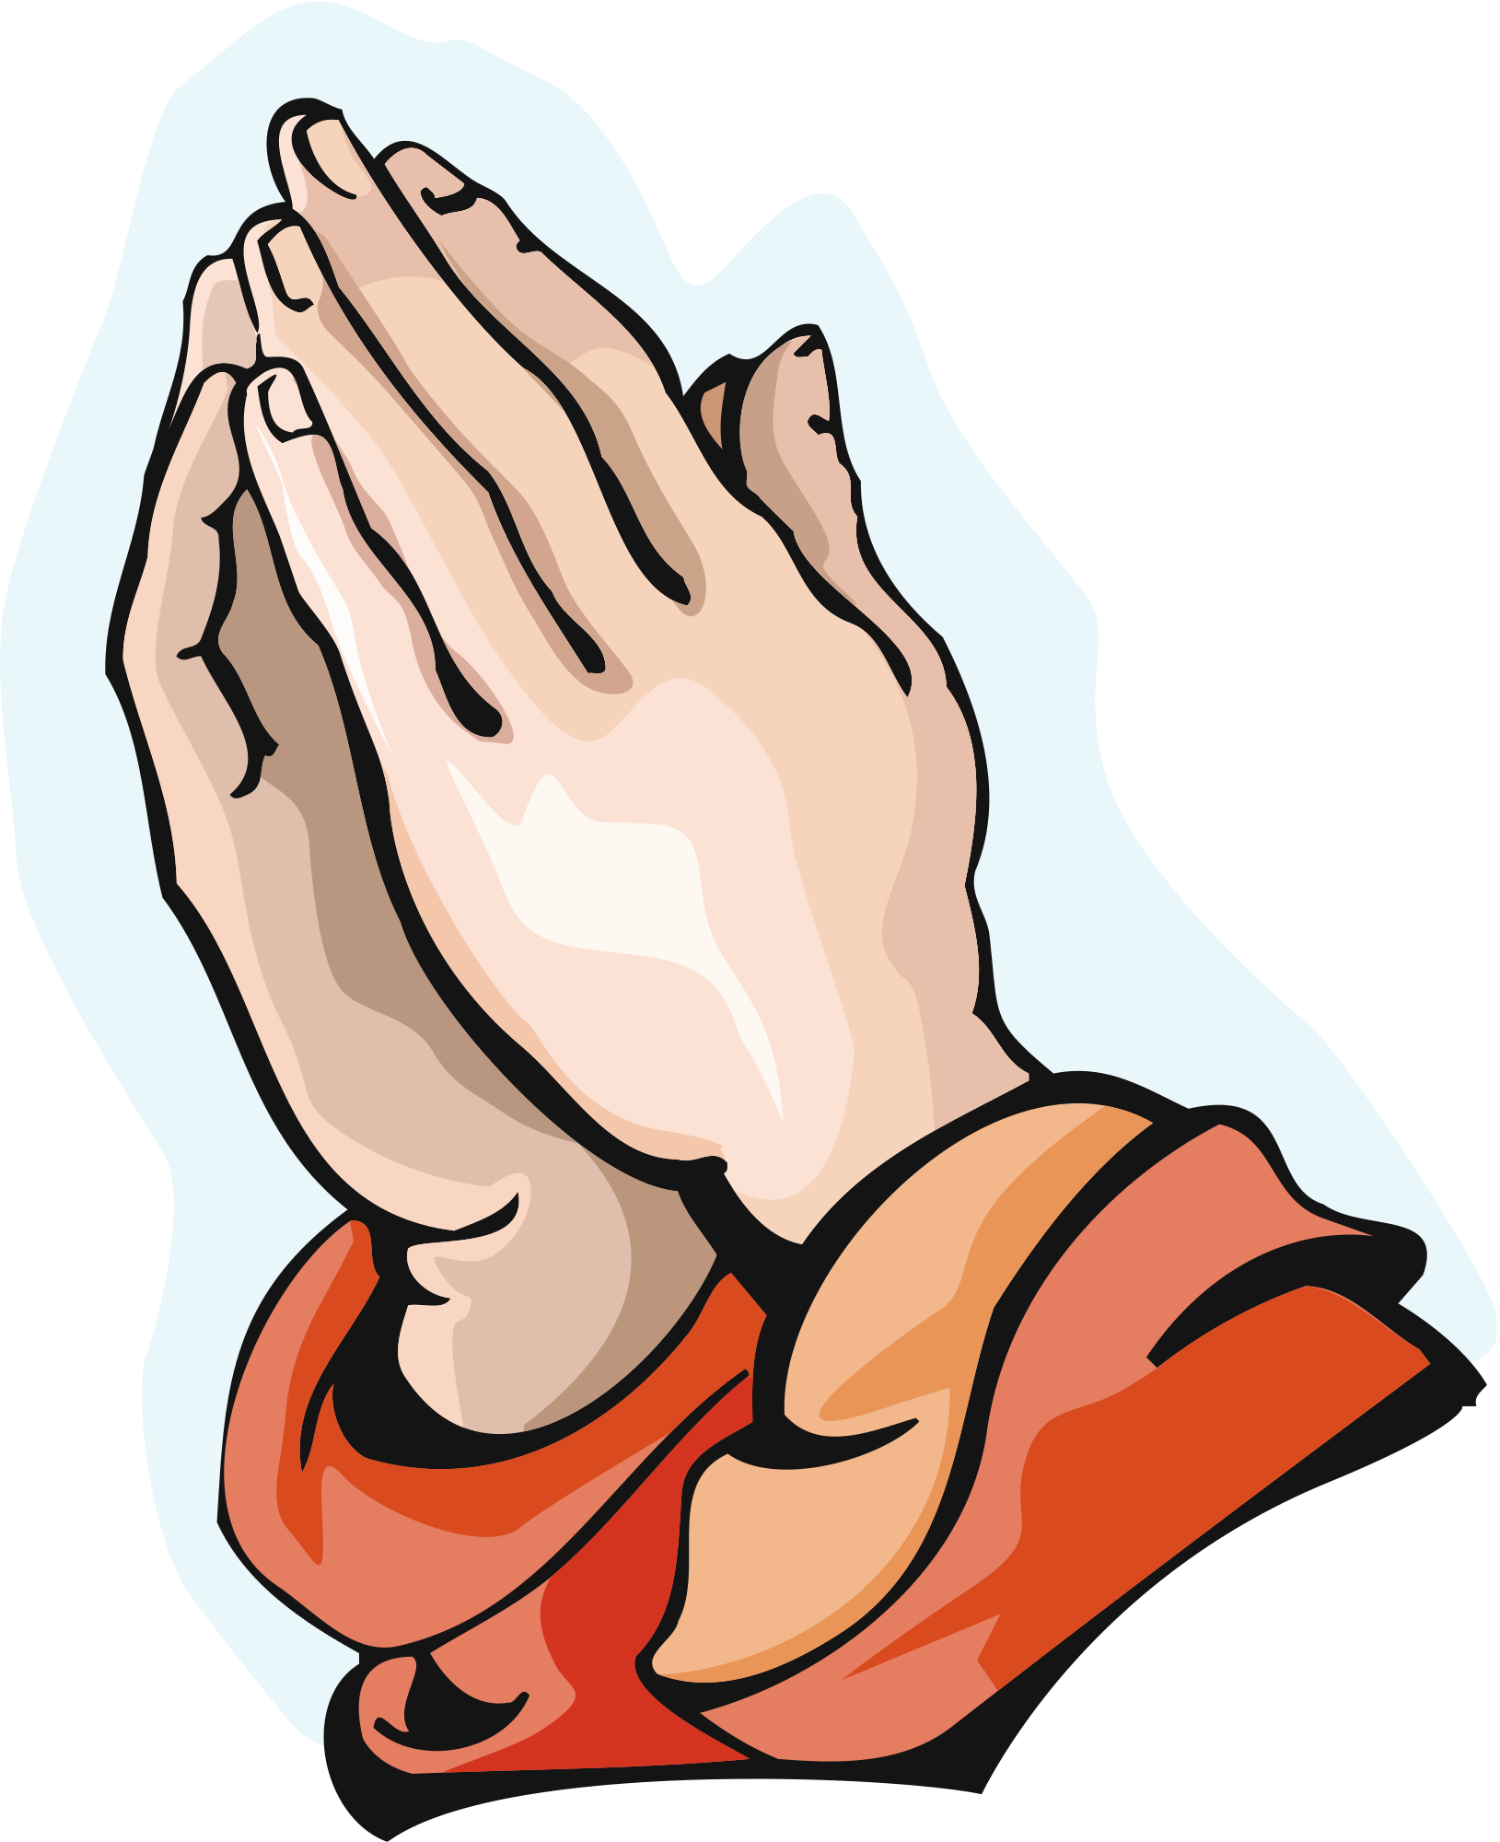 Free Clipart For Church Jesus Hands.